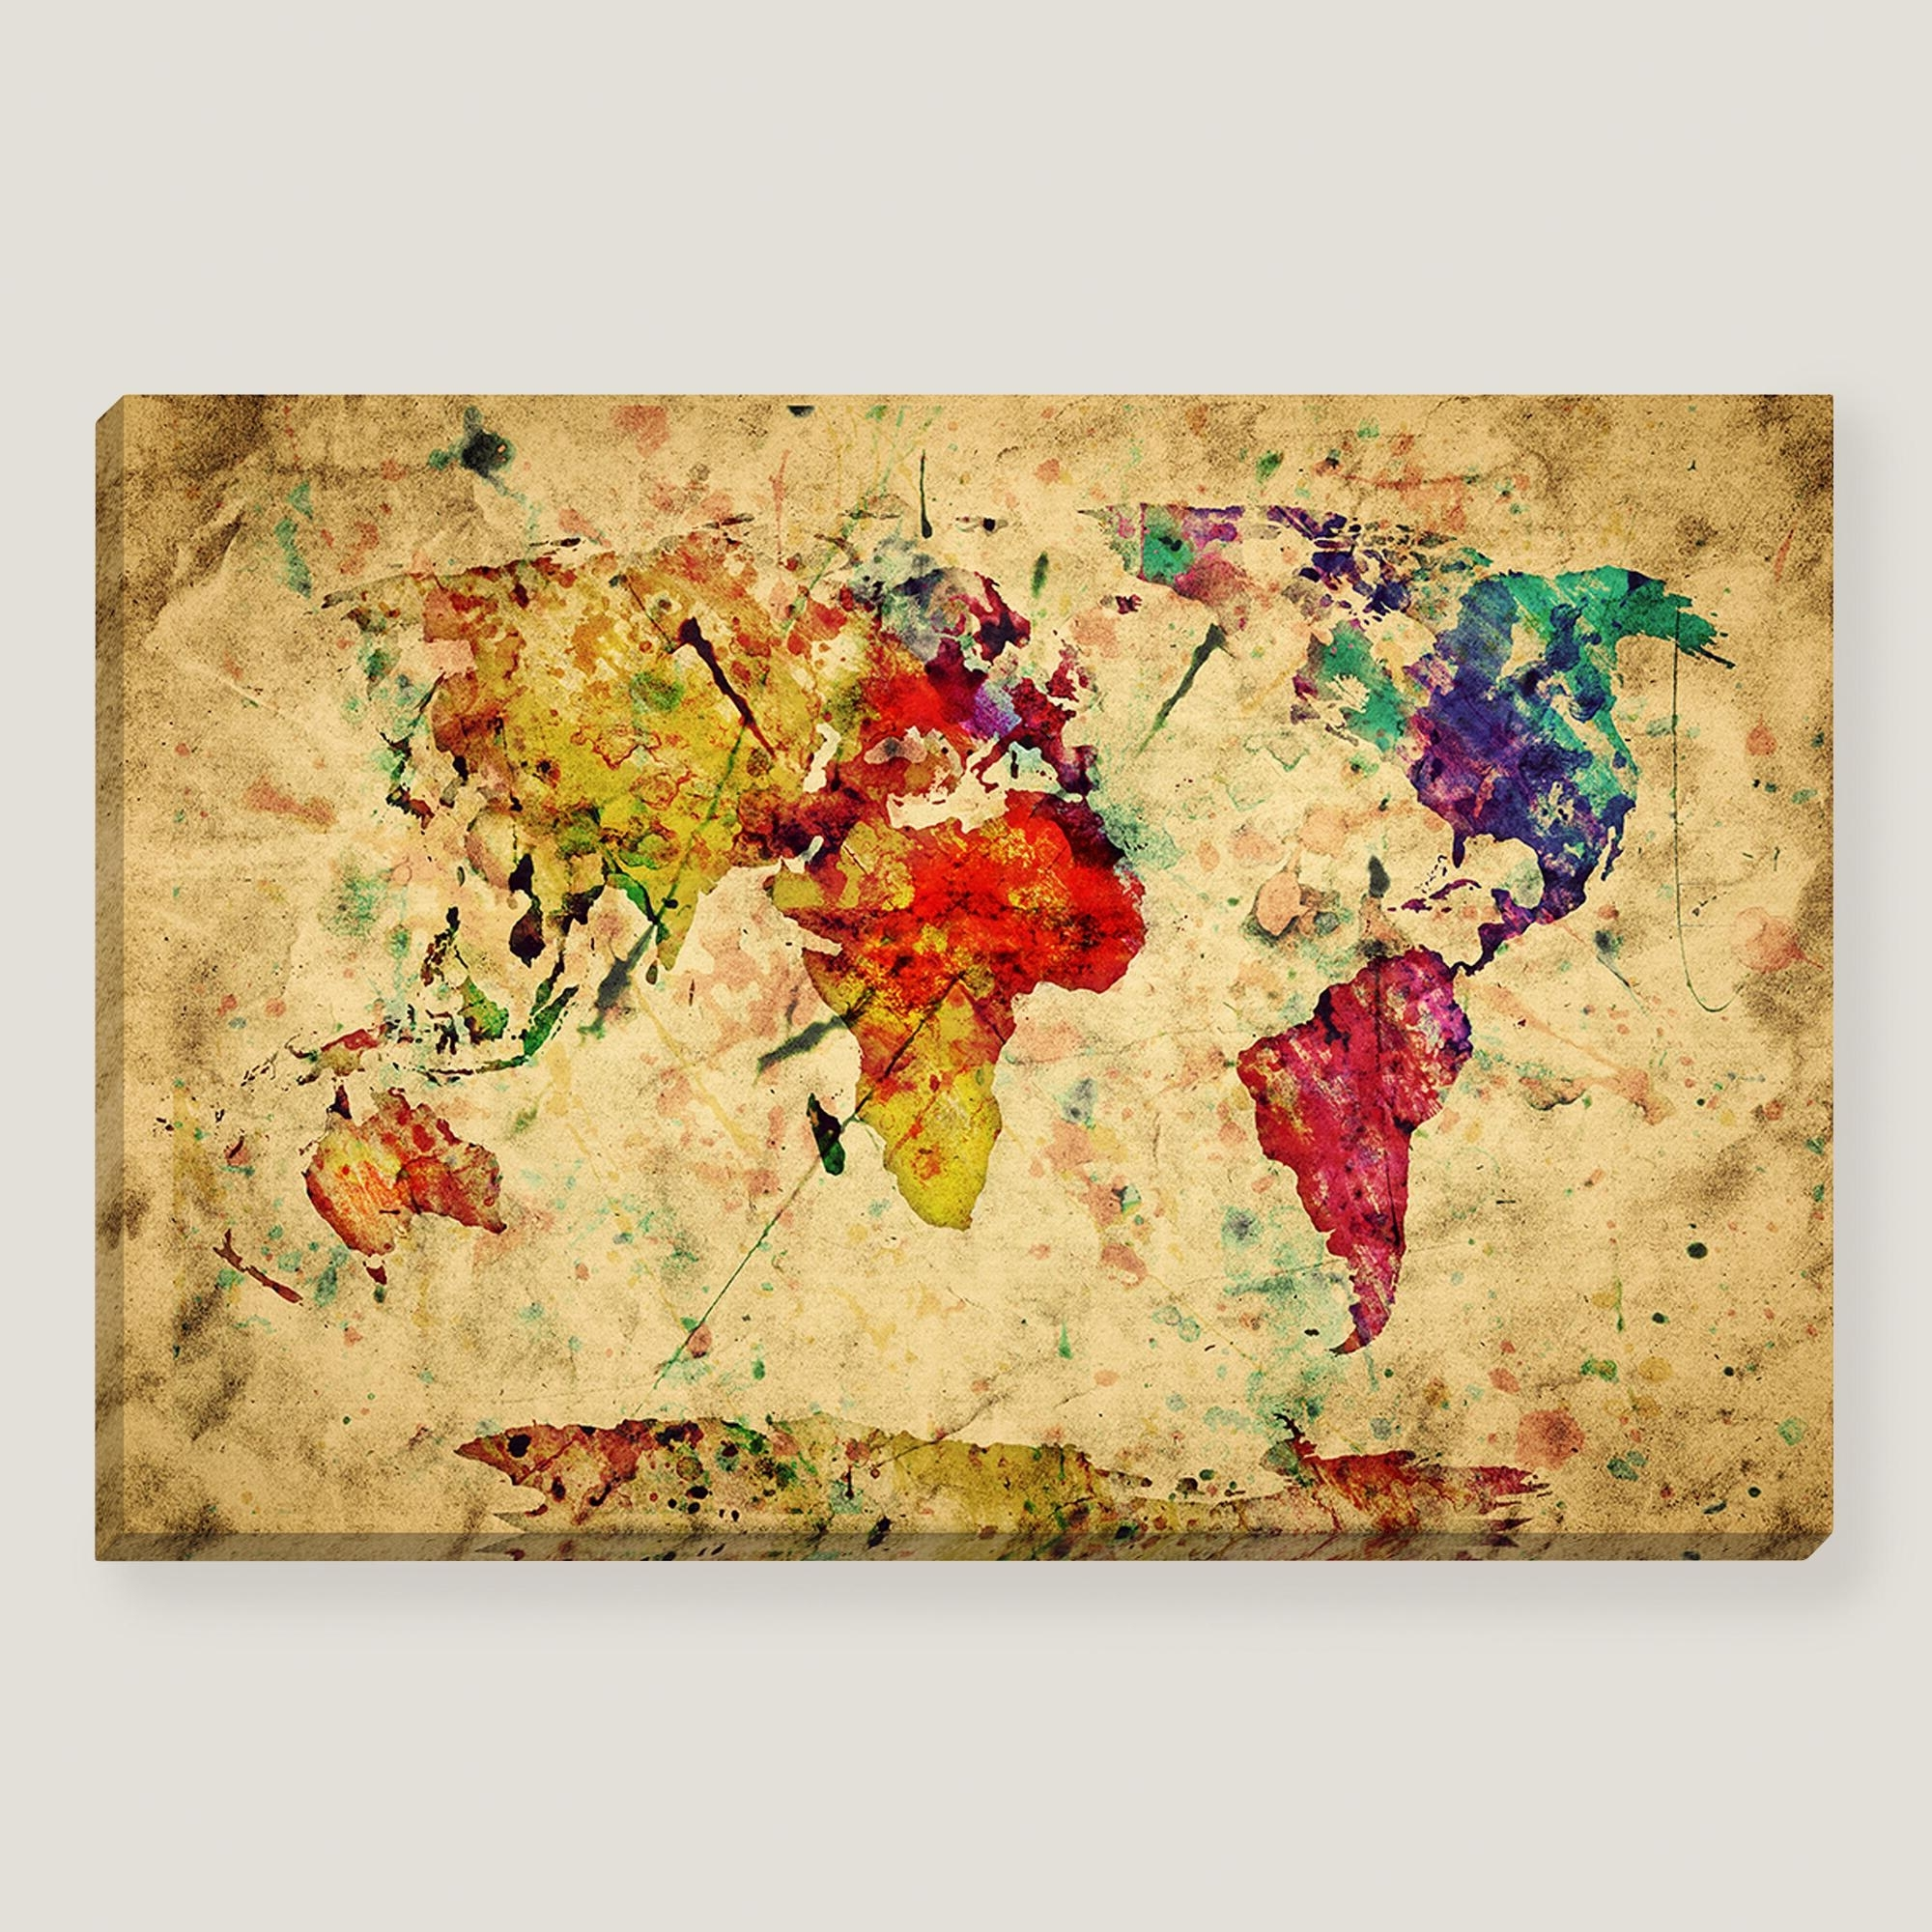 Preferred Wall Art Design Ideas: Brown Simple Vintage World Map Wall Art In World Map Wall Art Canvas (View 13 of 15)